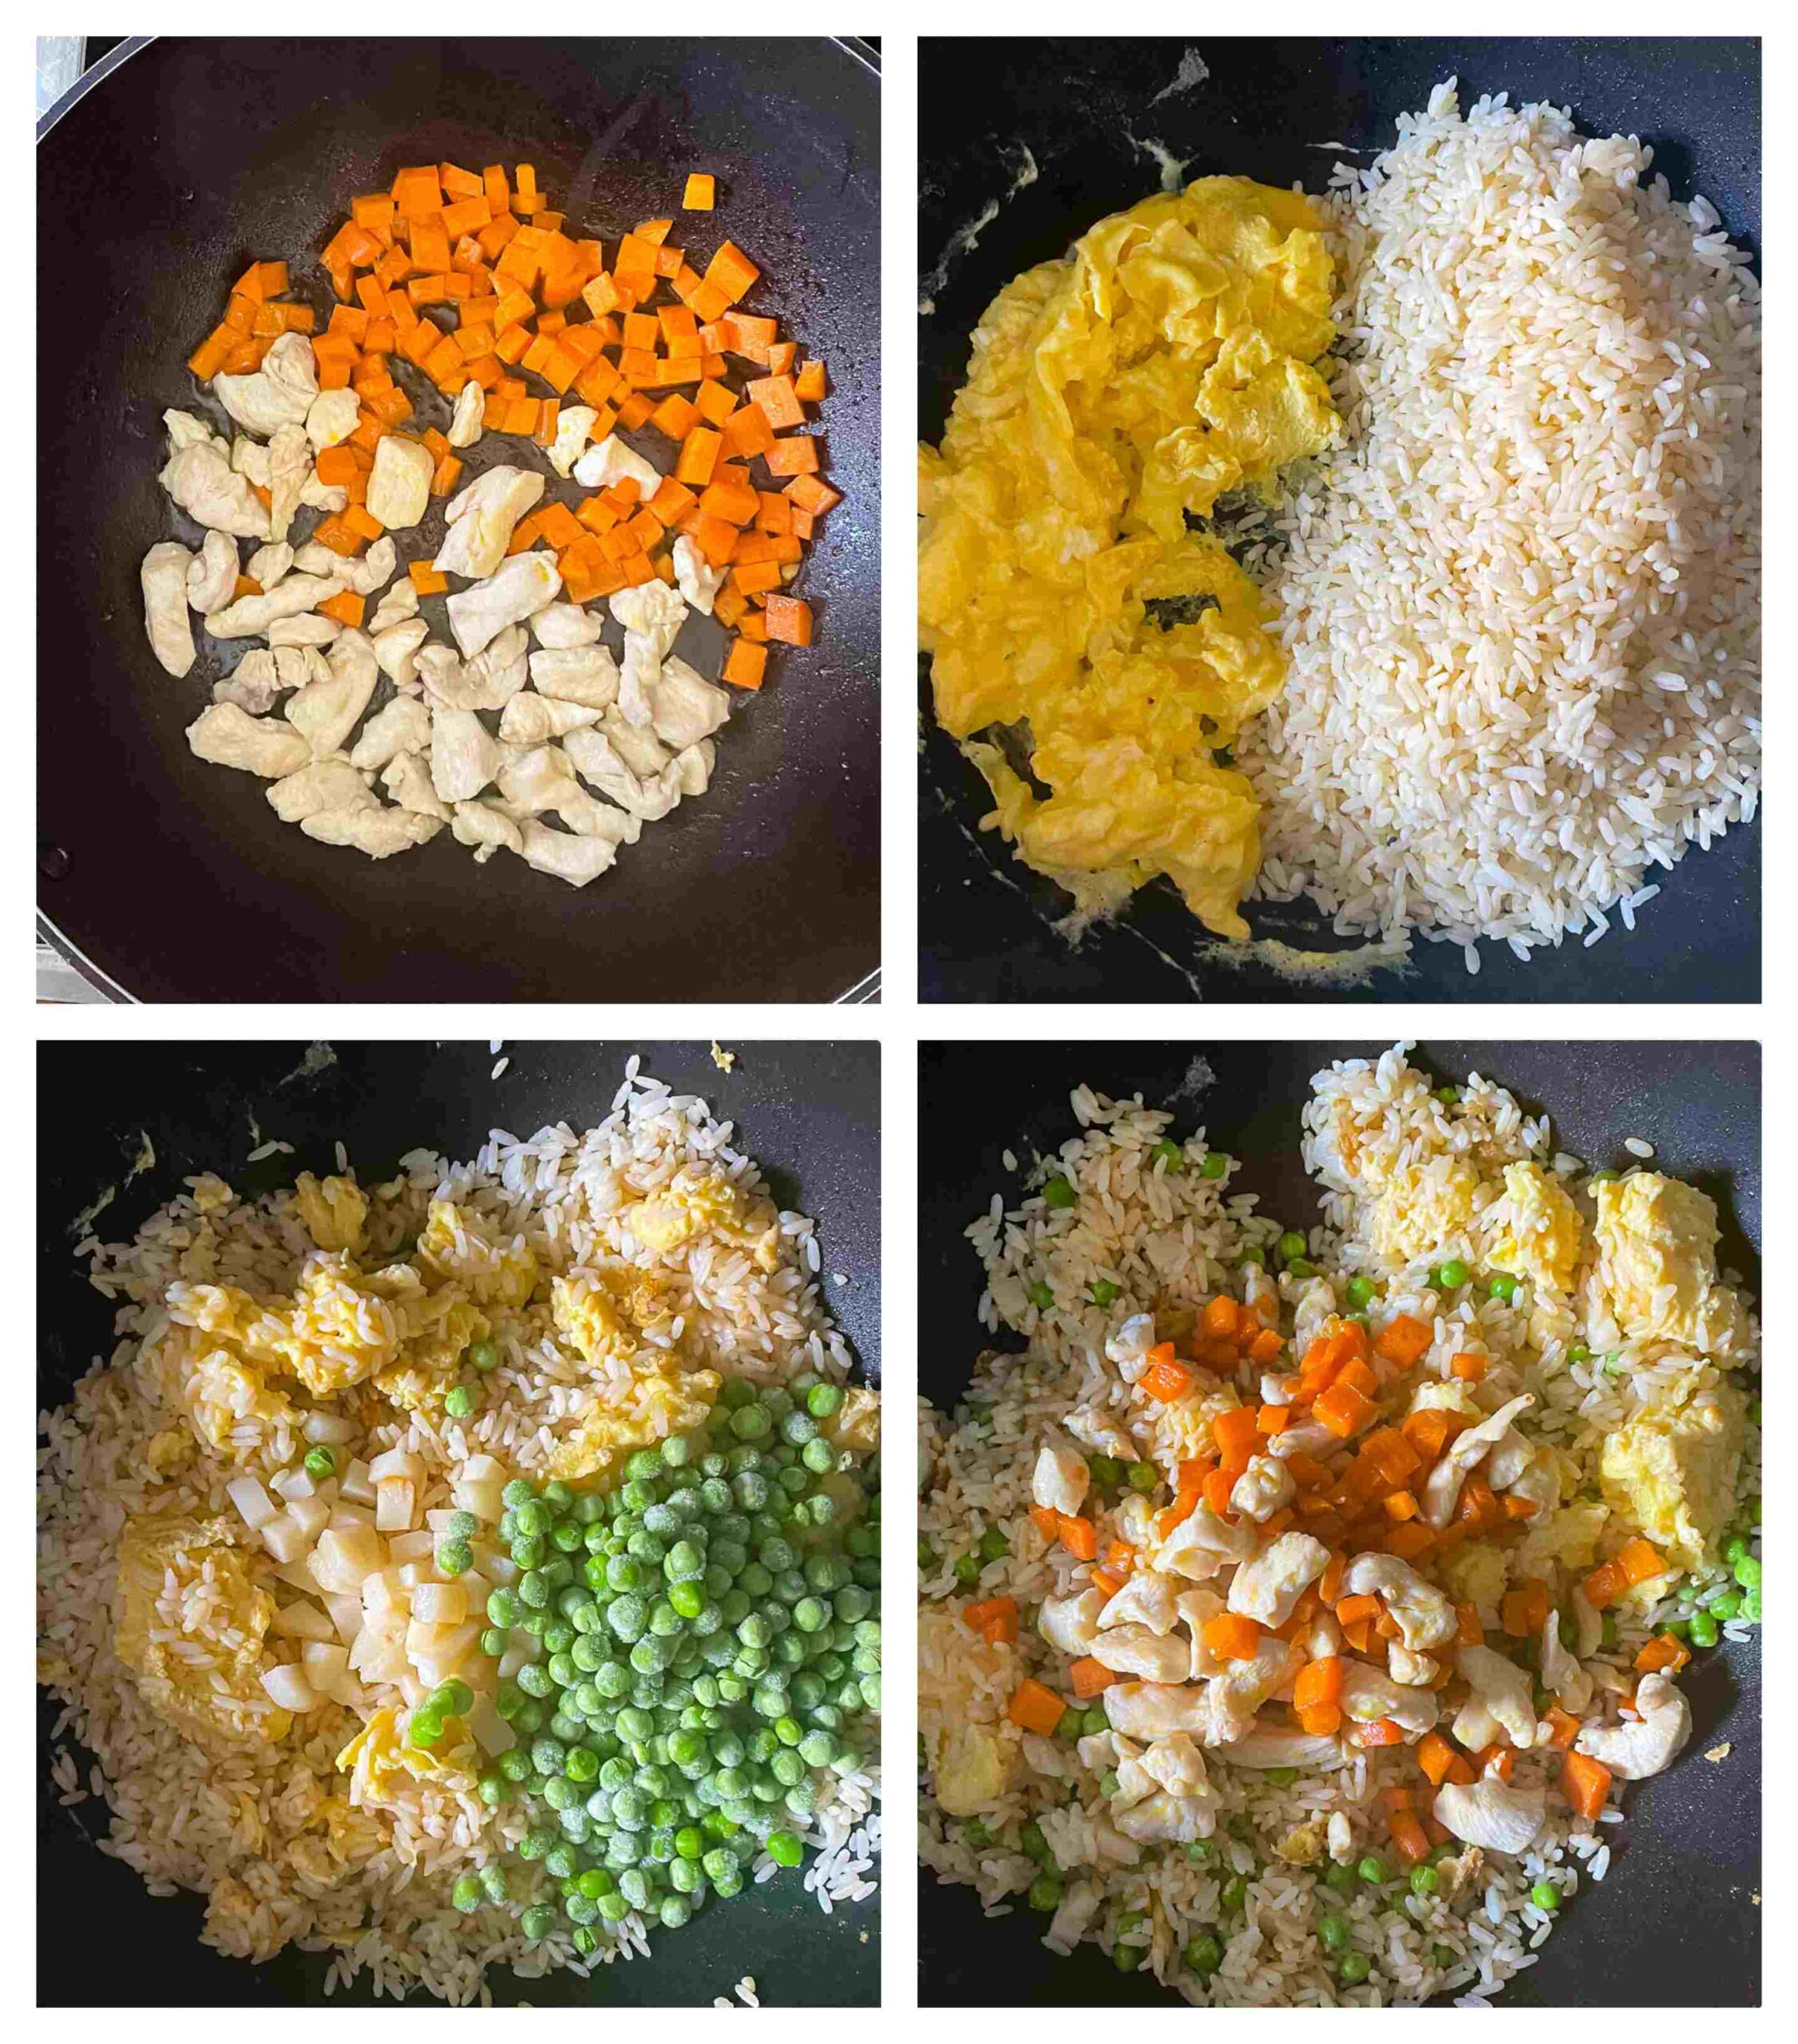 chicken fried rice process imafes